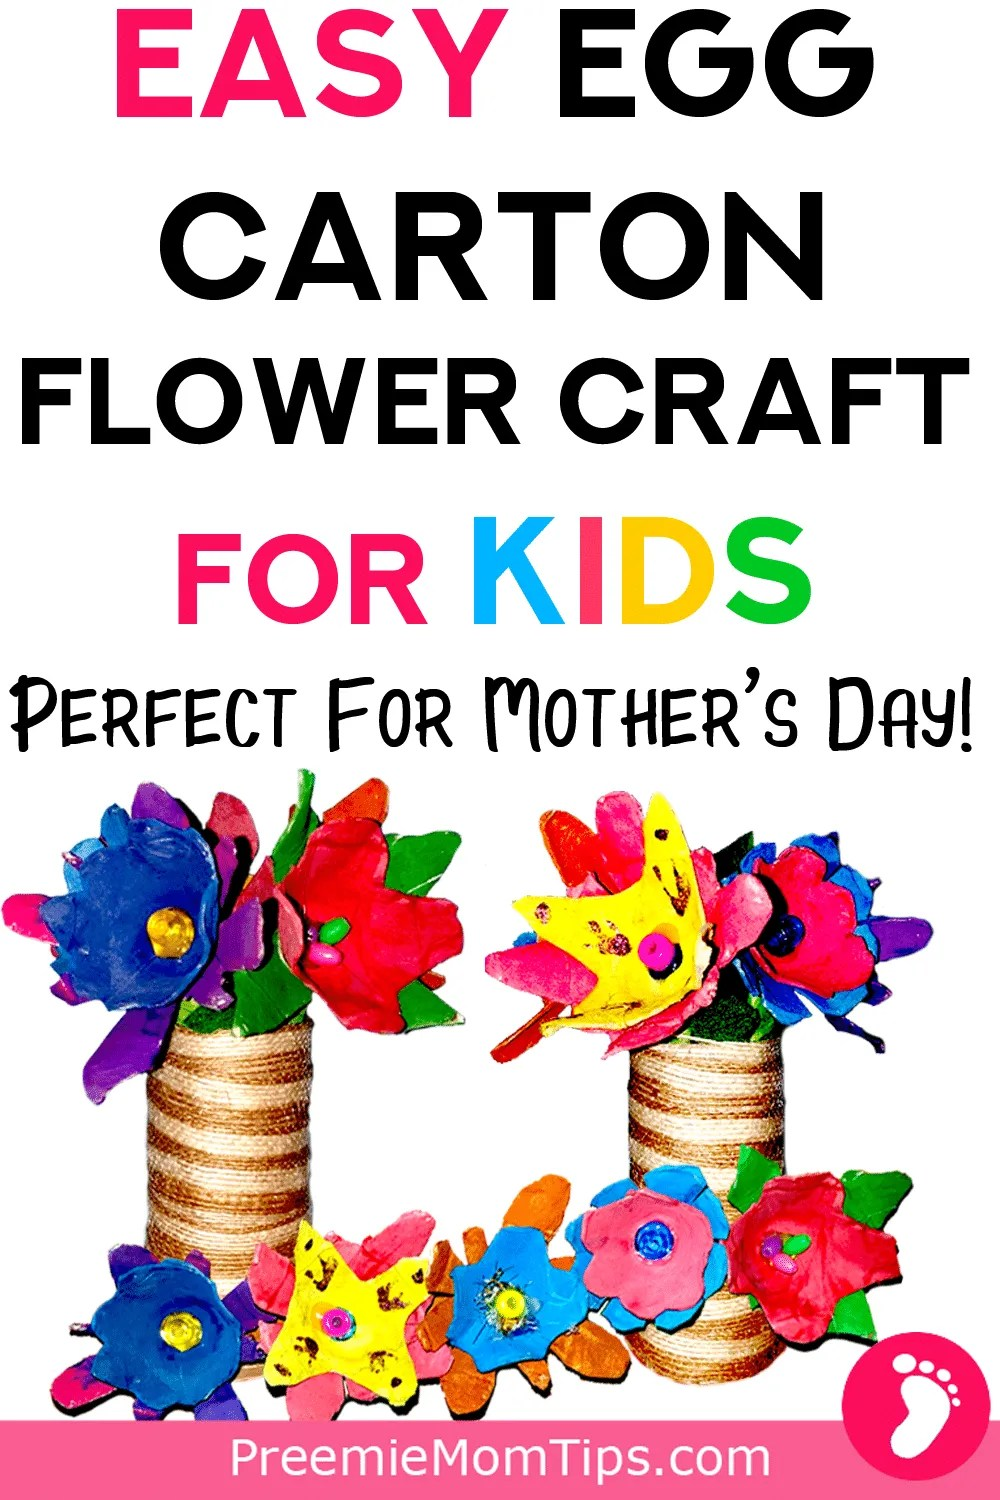 Easy Egg Carton Flower Craft for Kids